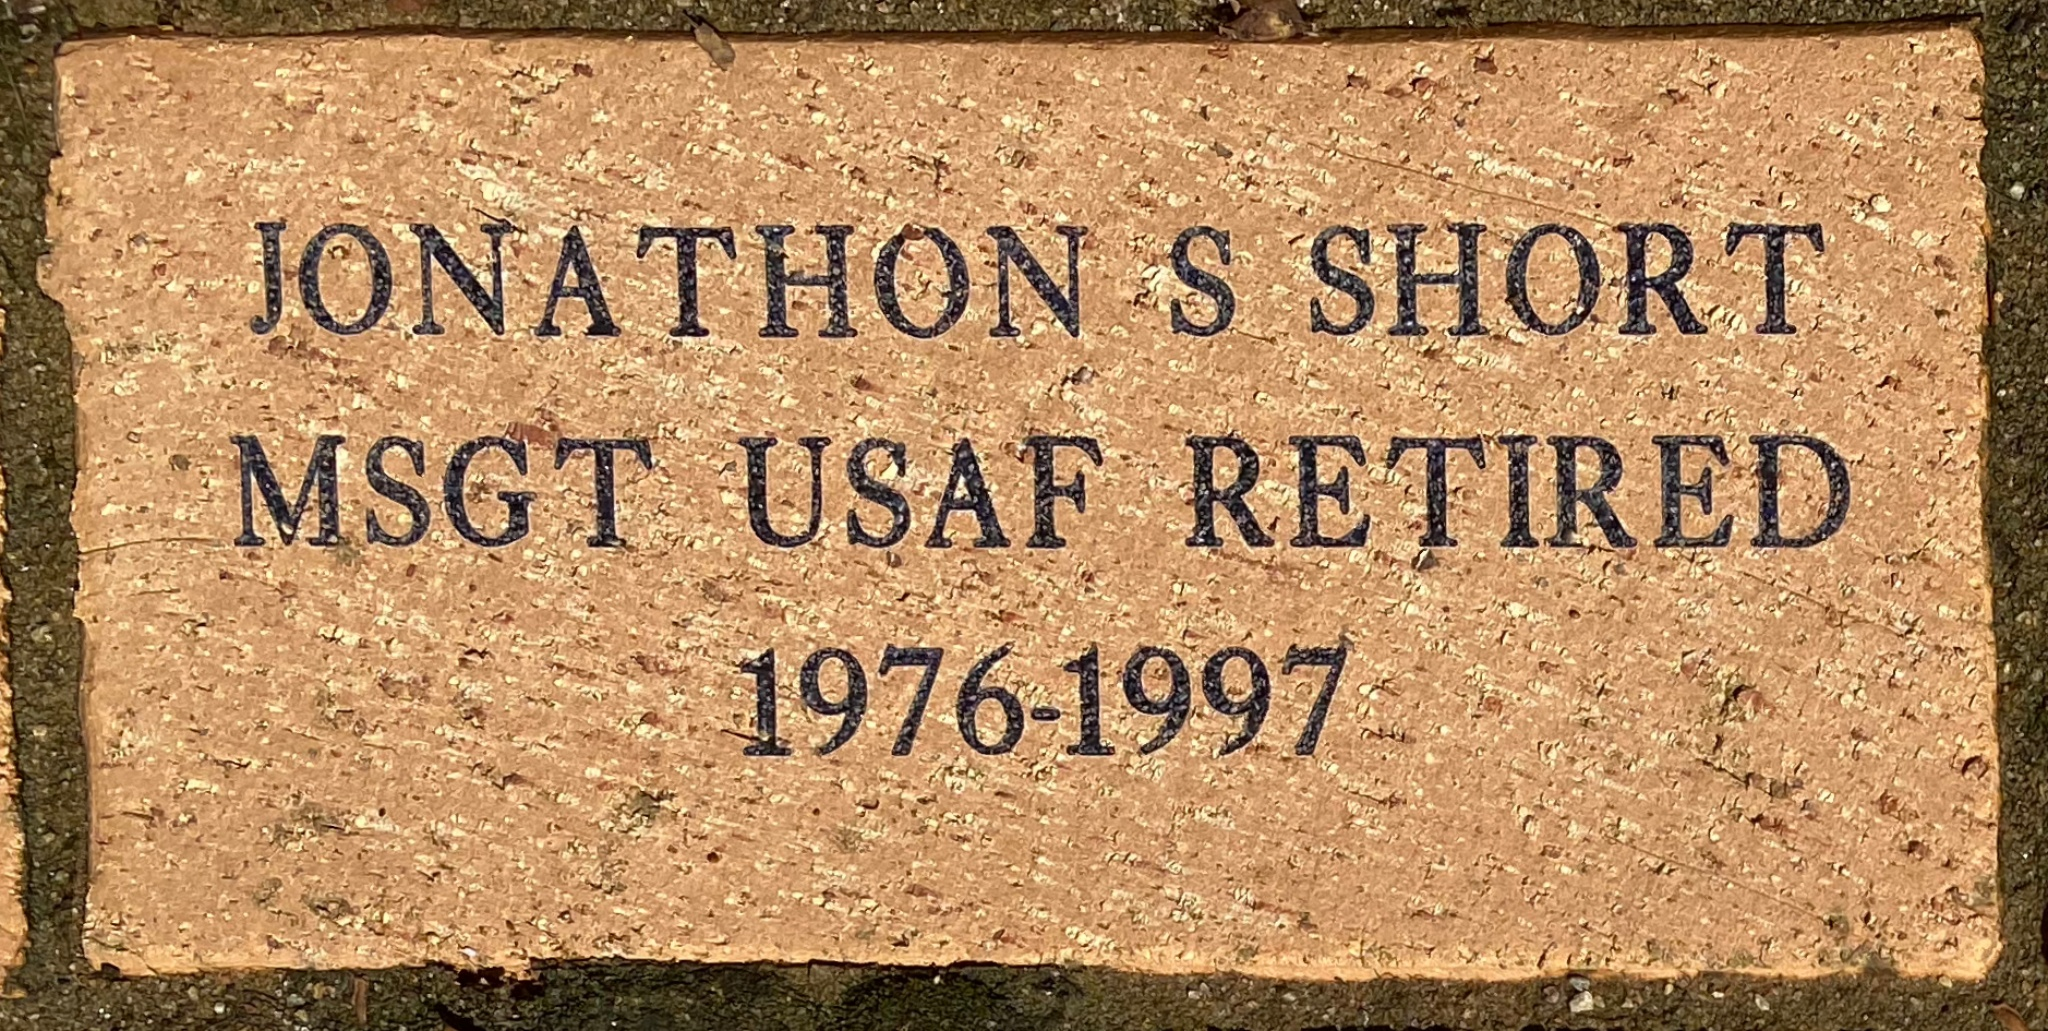 JONATHON S SHORT MSGT USAF RETIRED 1976-1997